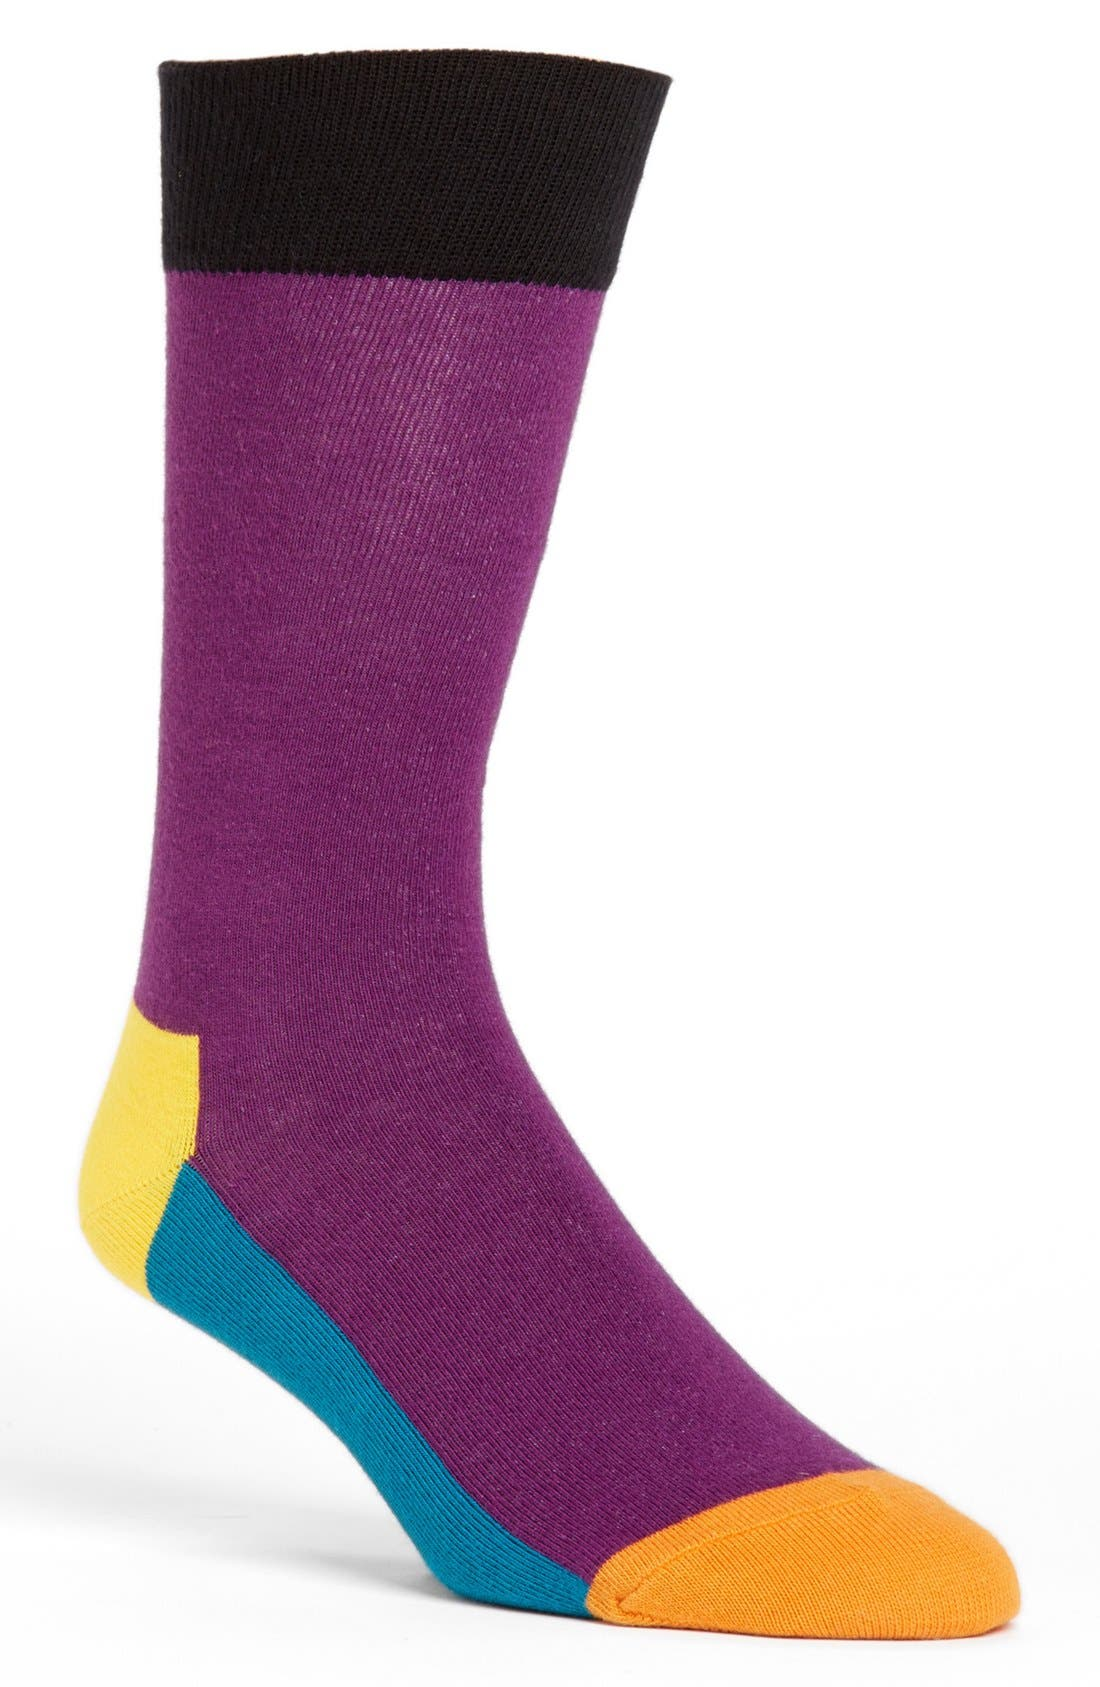 Alternate Image 1 Selected - Happy Socks 'Five Color' Socks